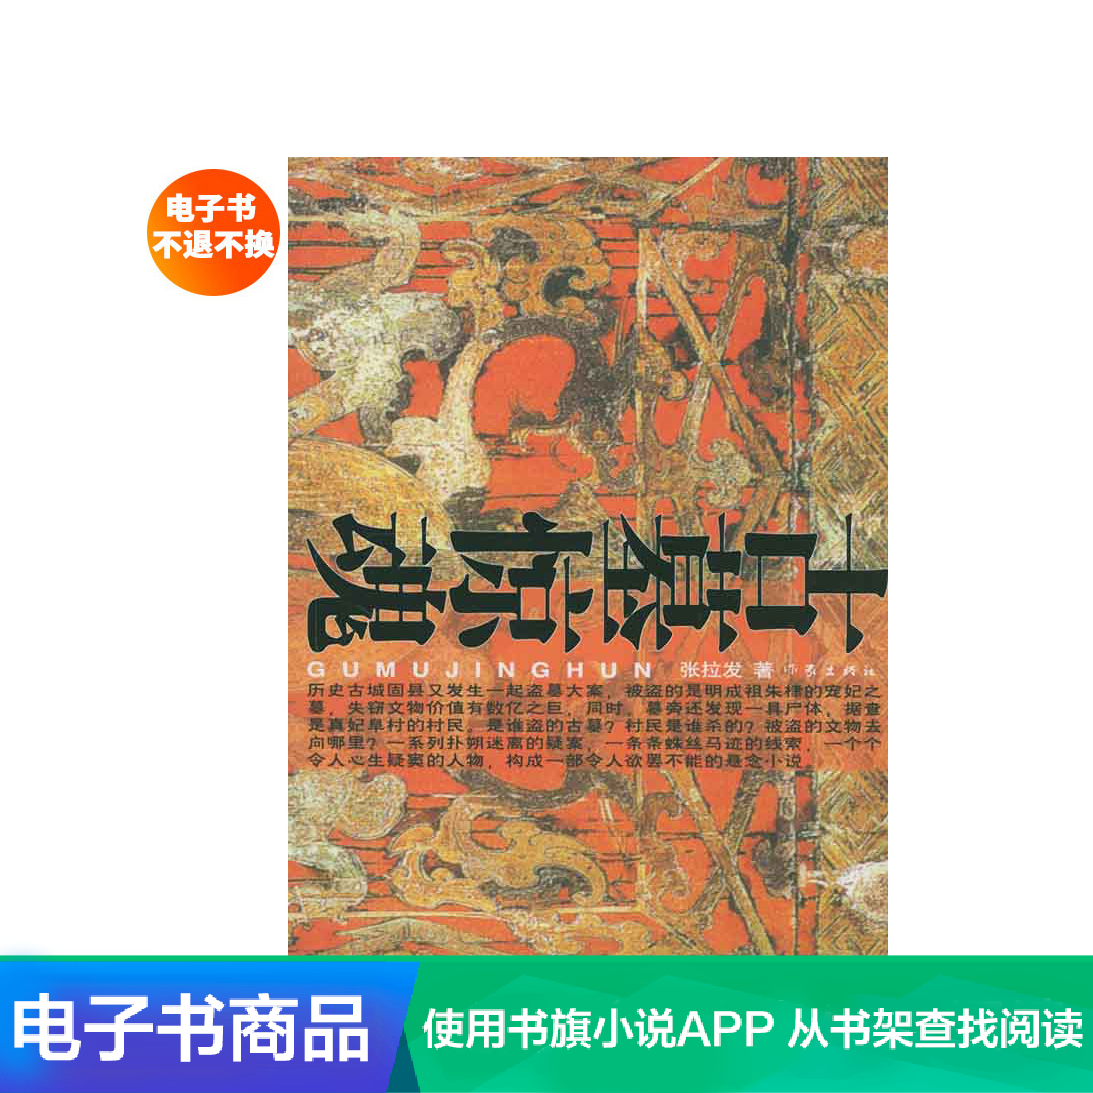 Zhang LAFA, the soul of ancient tombs, the detective literary novels of contemporary criminal cases of tomb theft